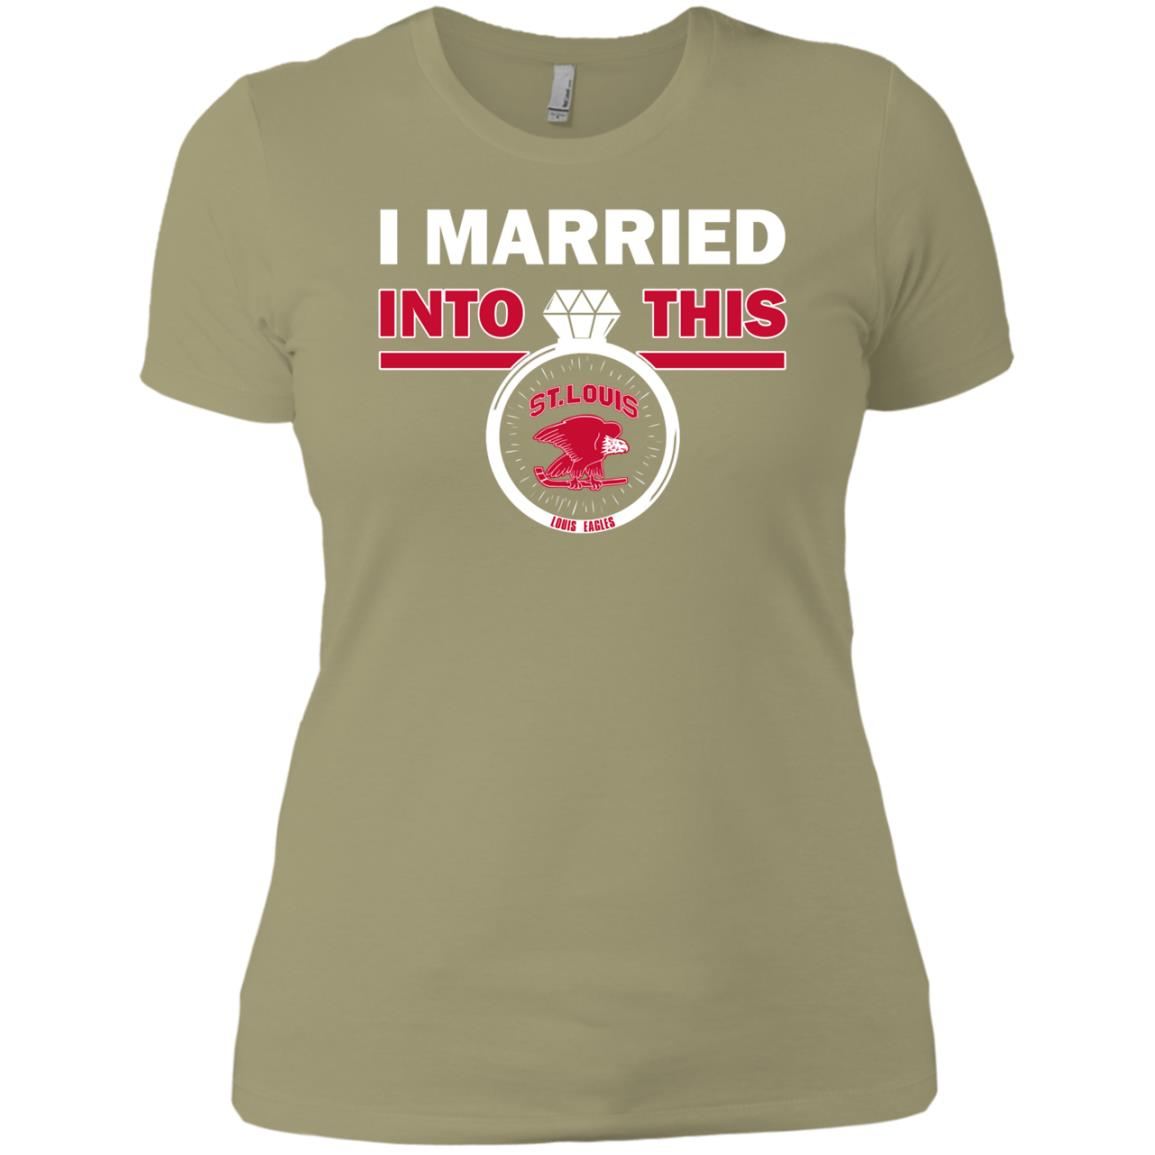 I Married Into This Nhl Louis Eagles Fans Gift T-shirt